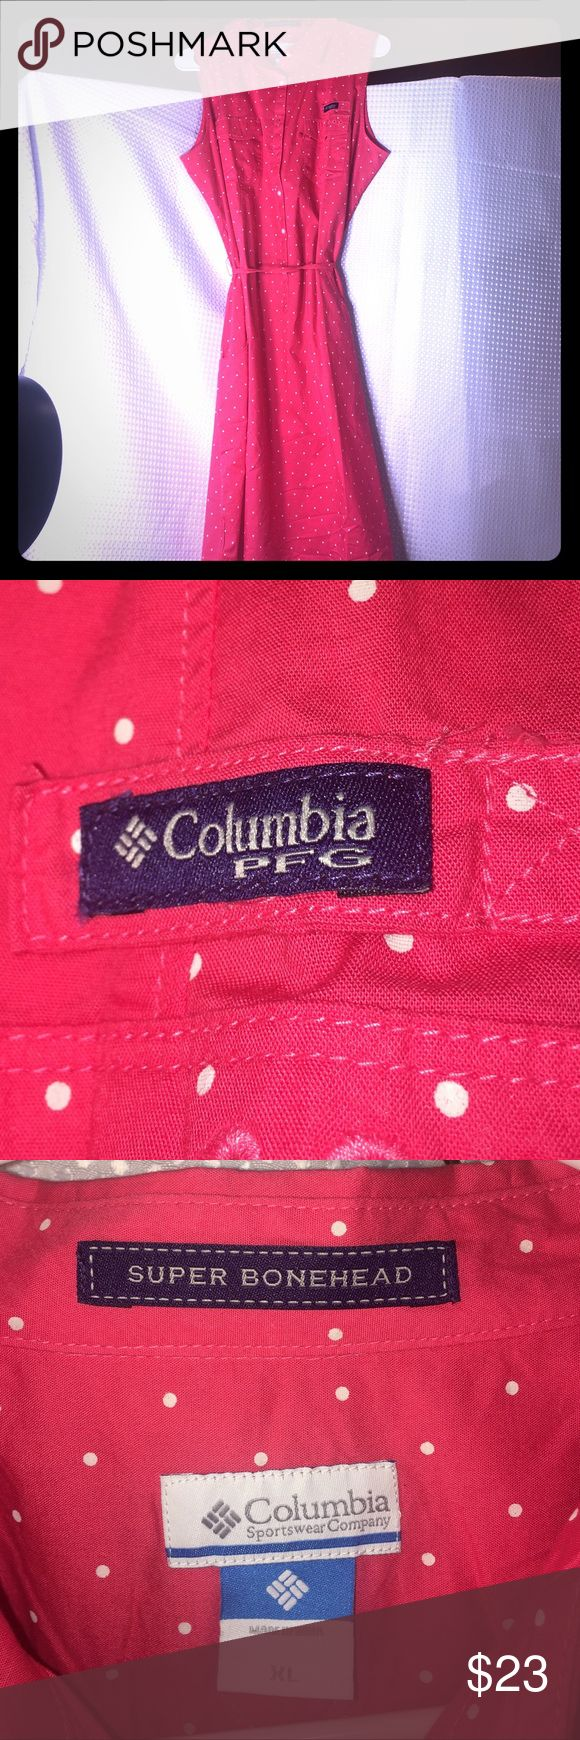 Columbia bright red dress! So sophisticated! Columbia sportswear company bright red dress size XL --in perfect condition Columbia sportswear company Dresses